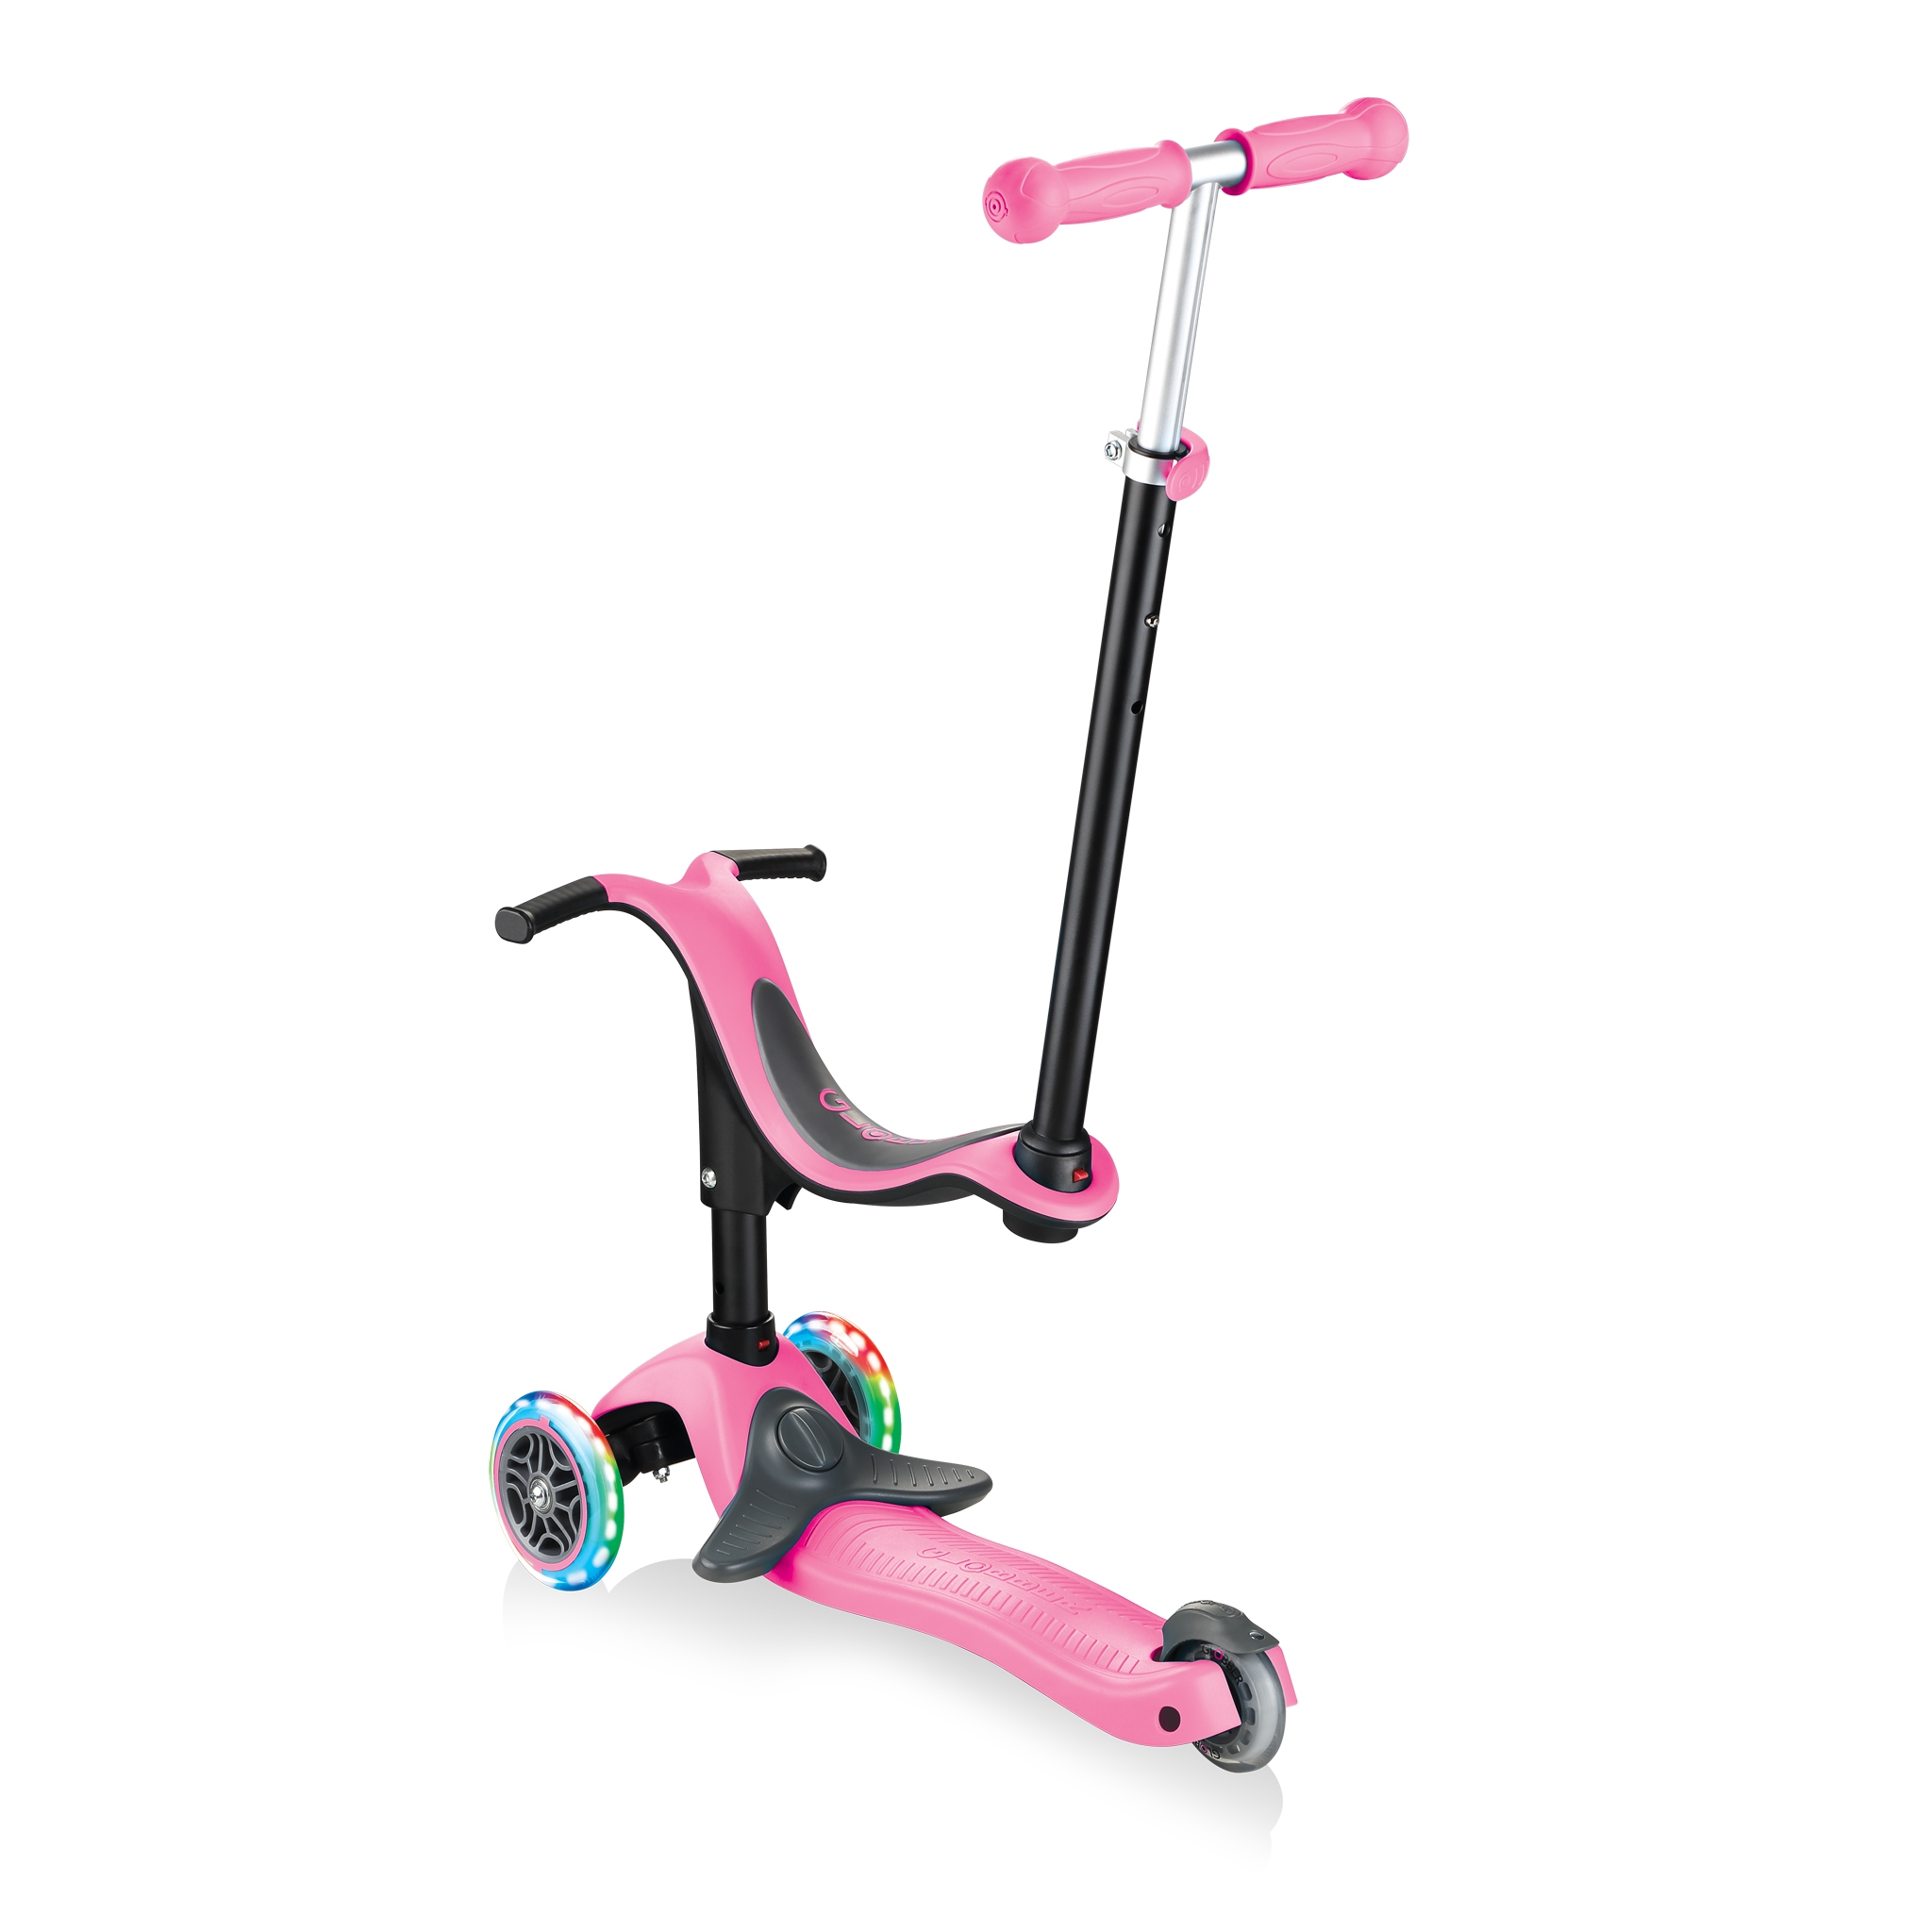 GO-UP-SPORTY-PLUS-LIGHTS-scooter-with-seat-with-removable-footrest_deep-pink 3